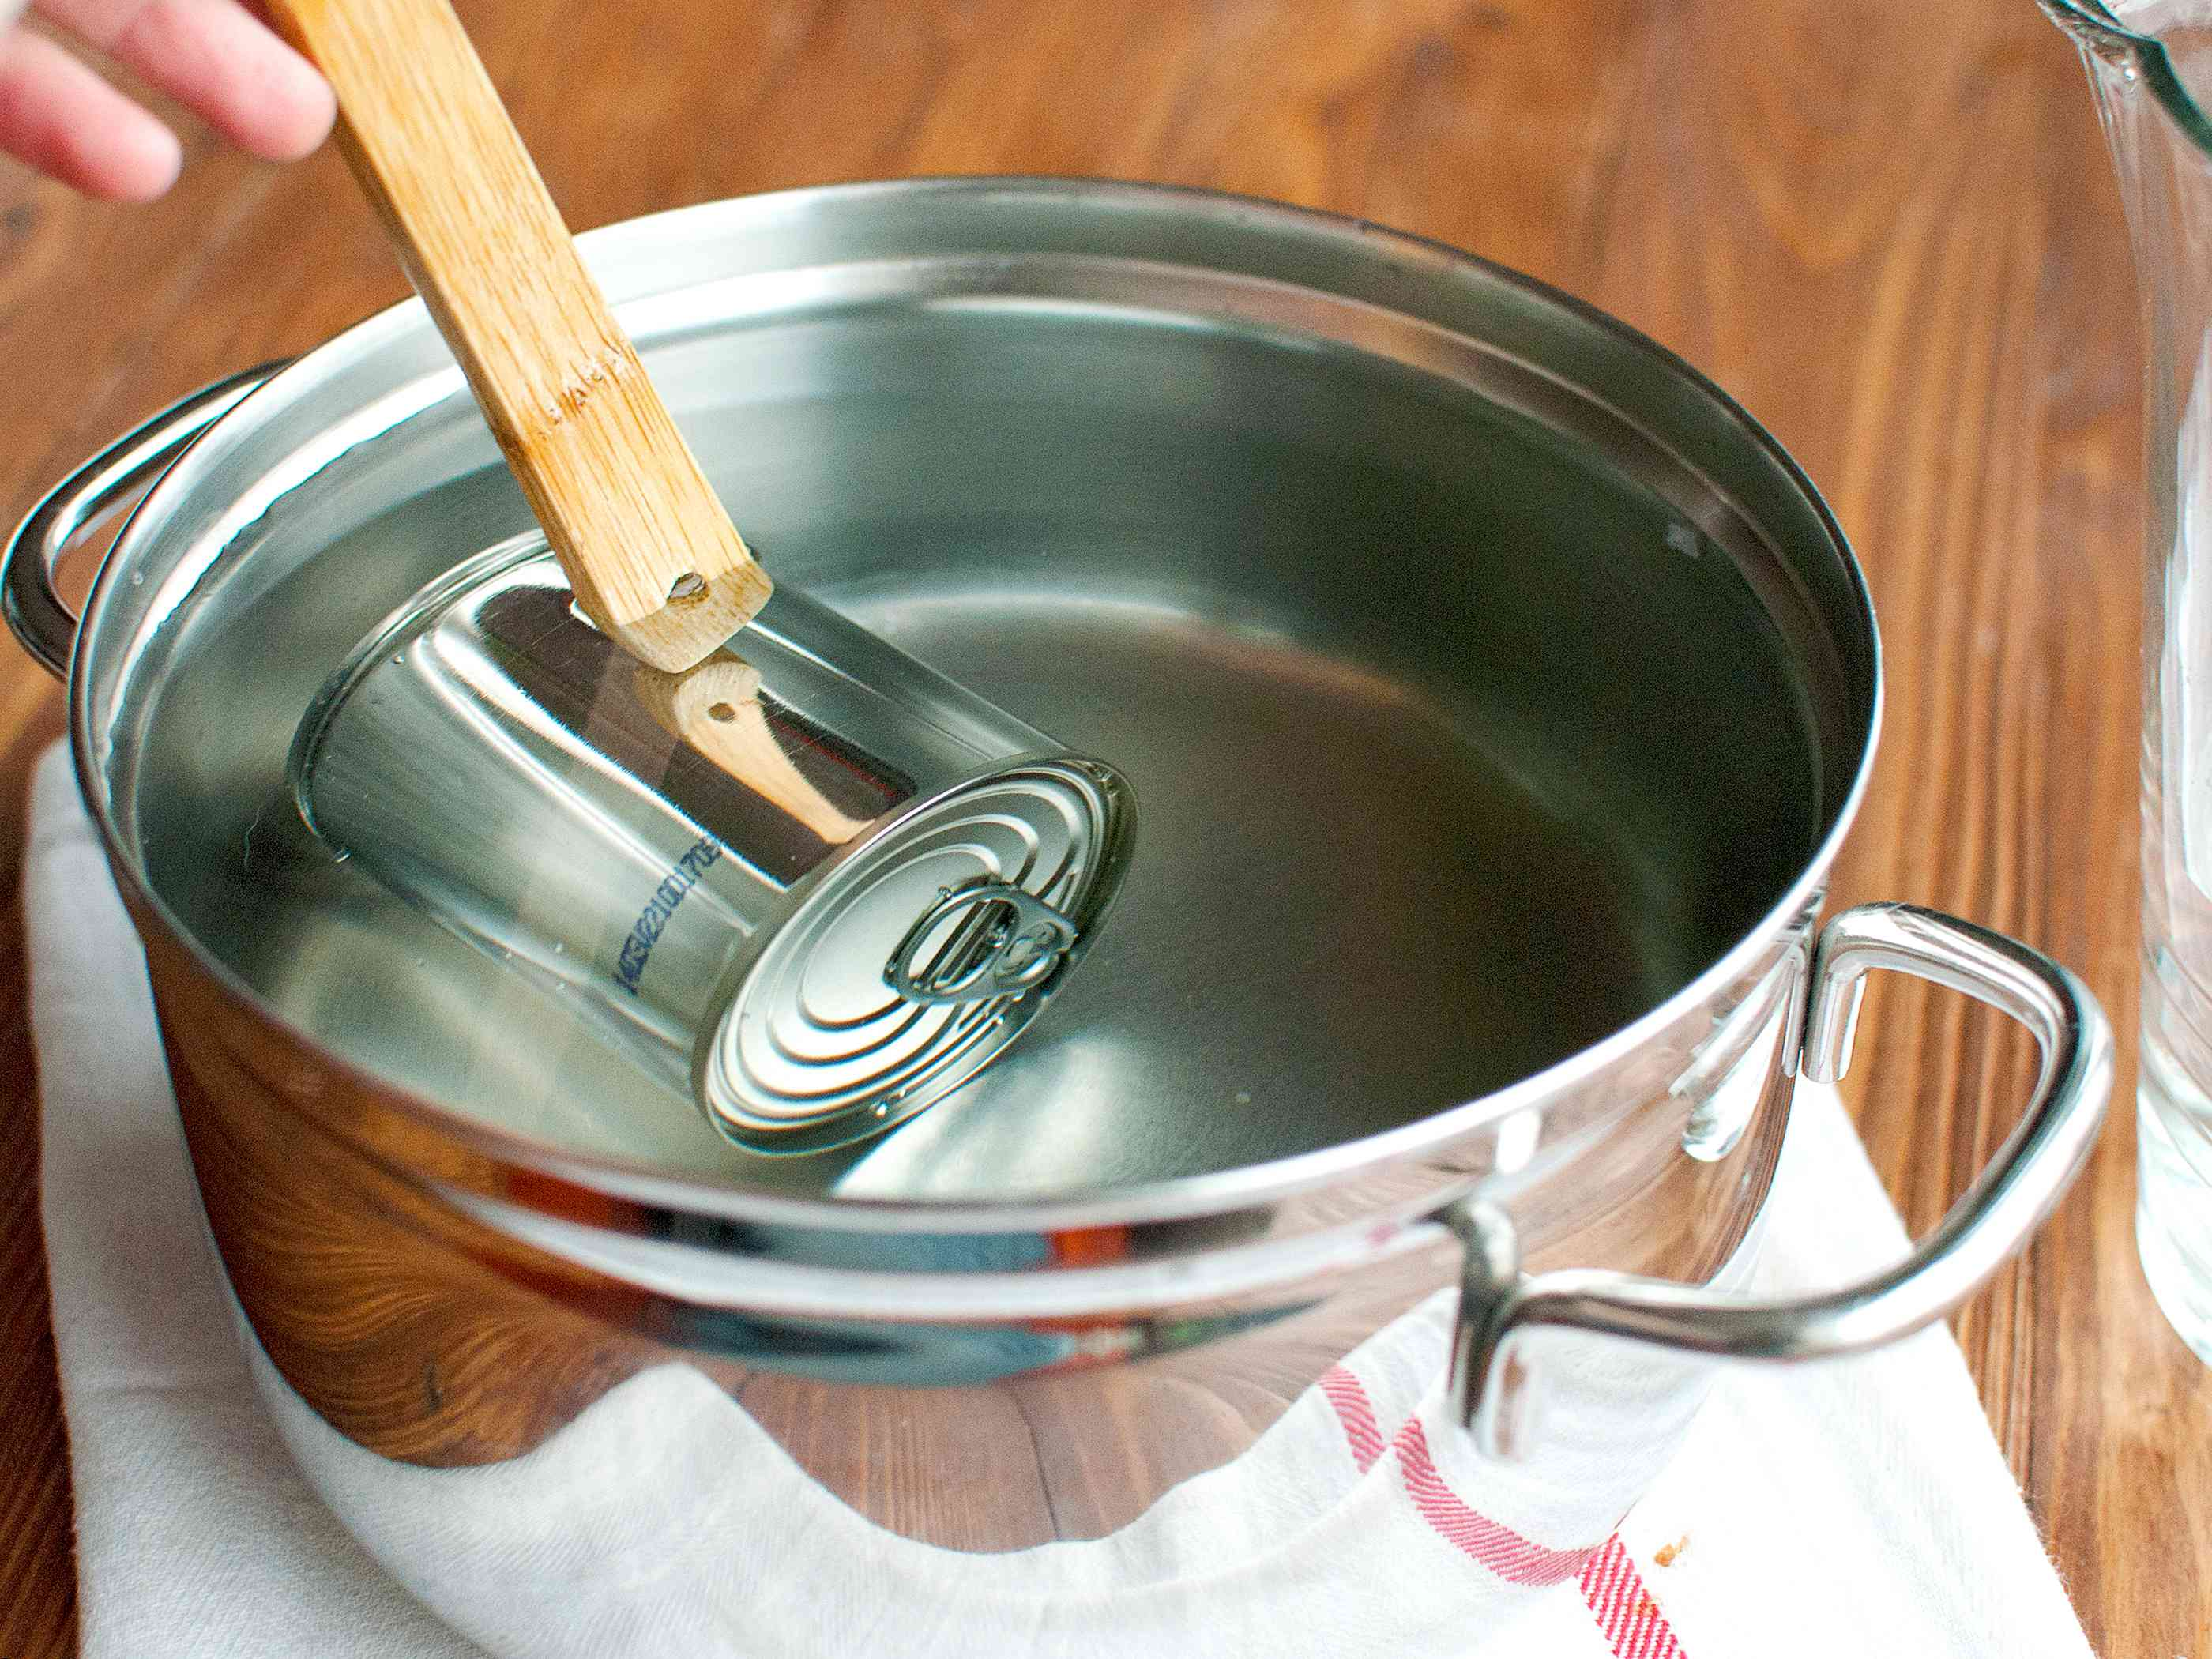 Placing a can of sweetened condensed milk in a pot of water to cook into dulce de leche